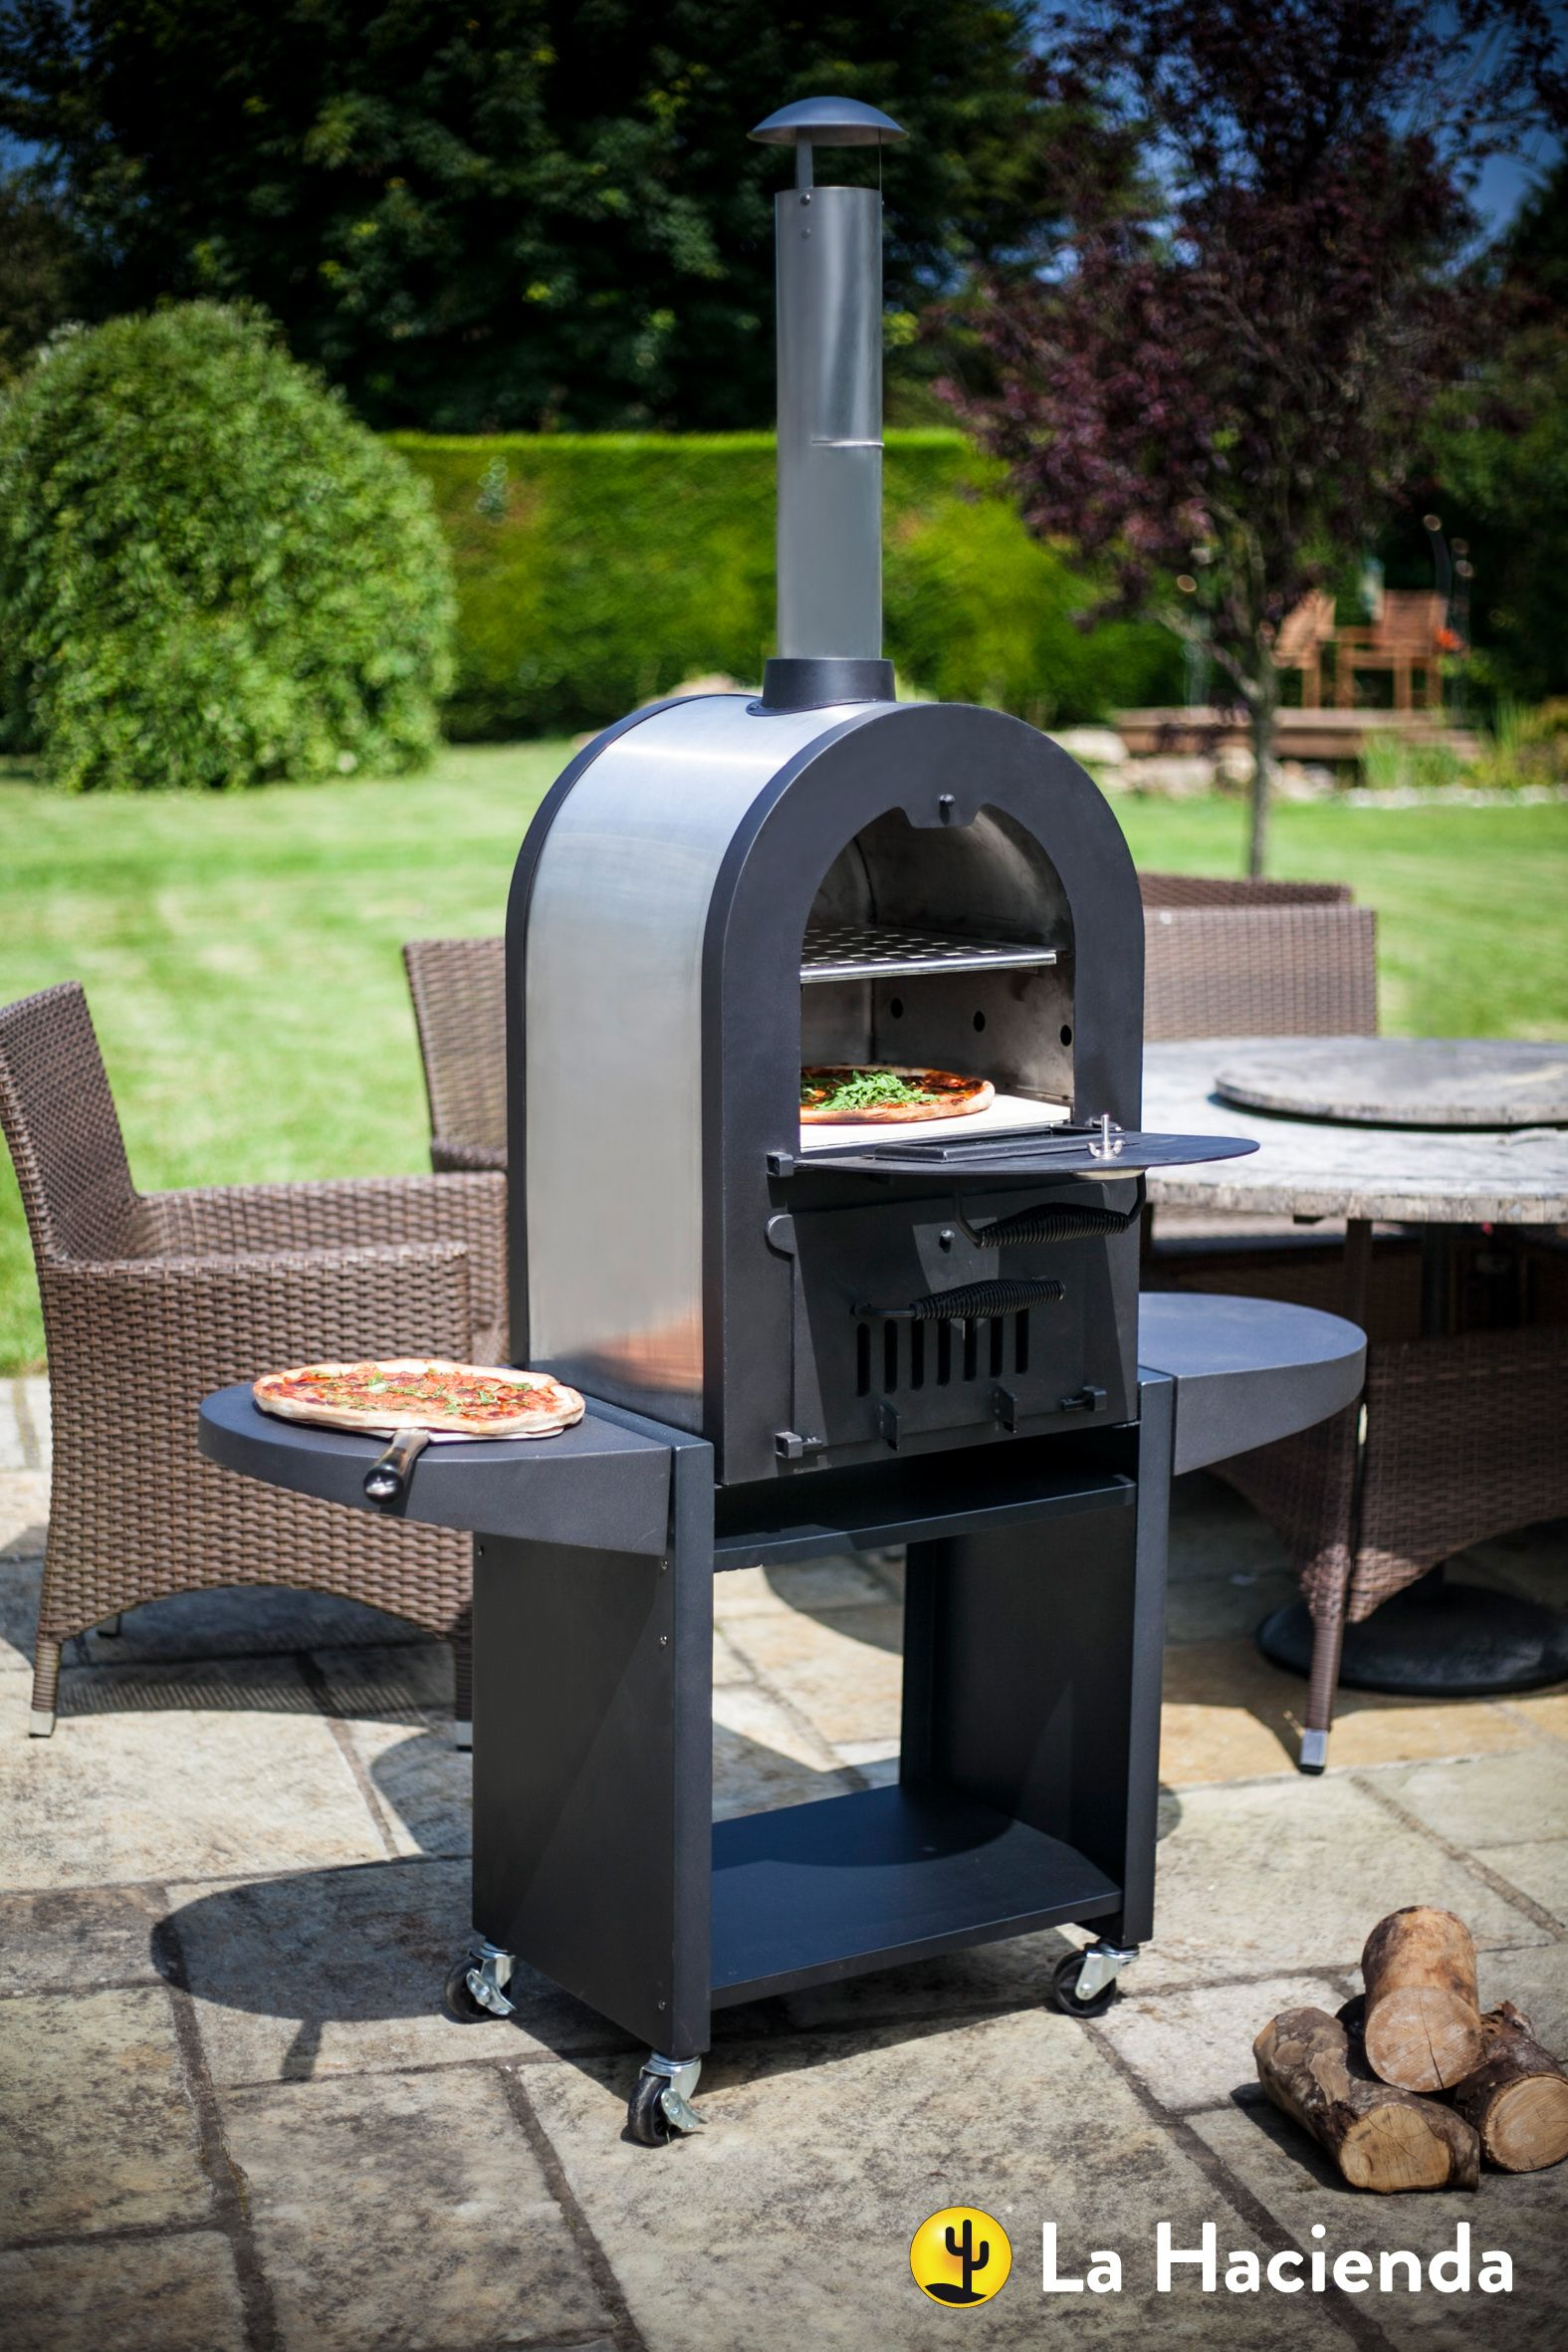 The Romana Wood Fired Outdoor Oven Perfect For Cooking